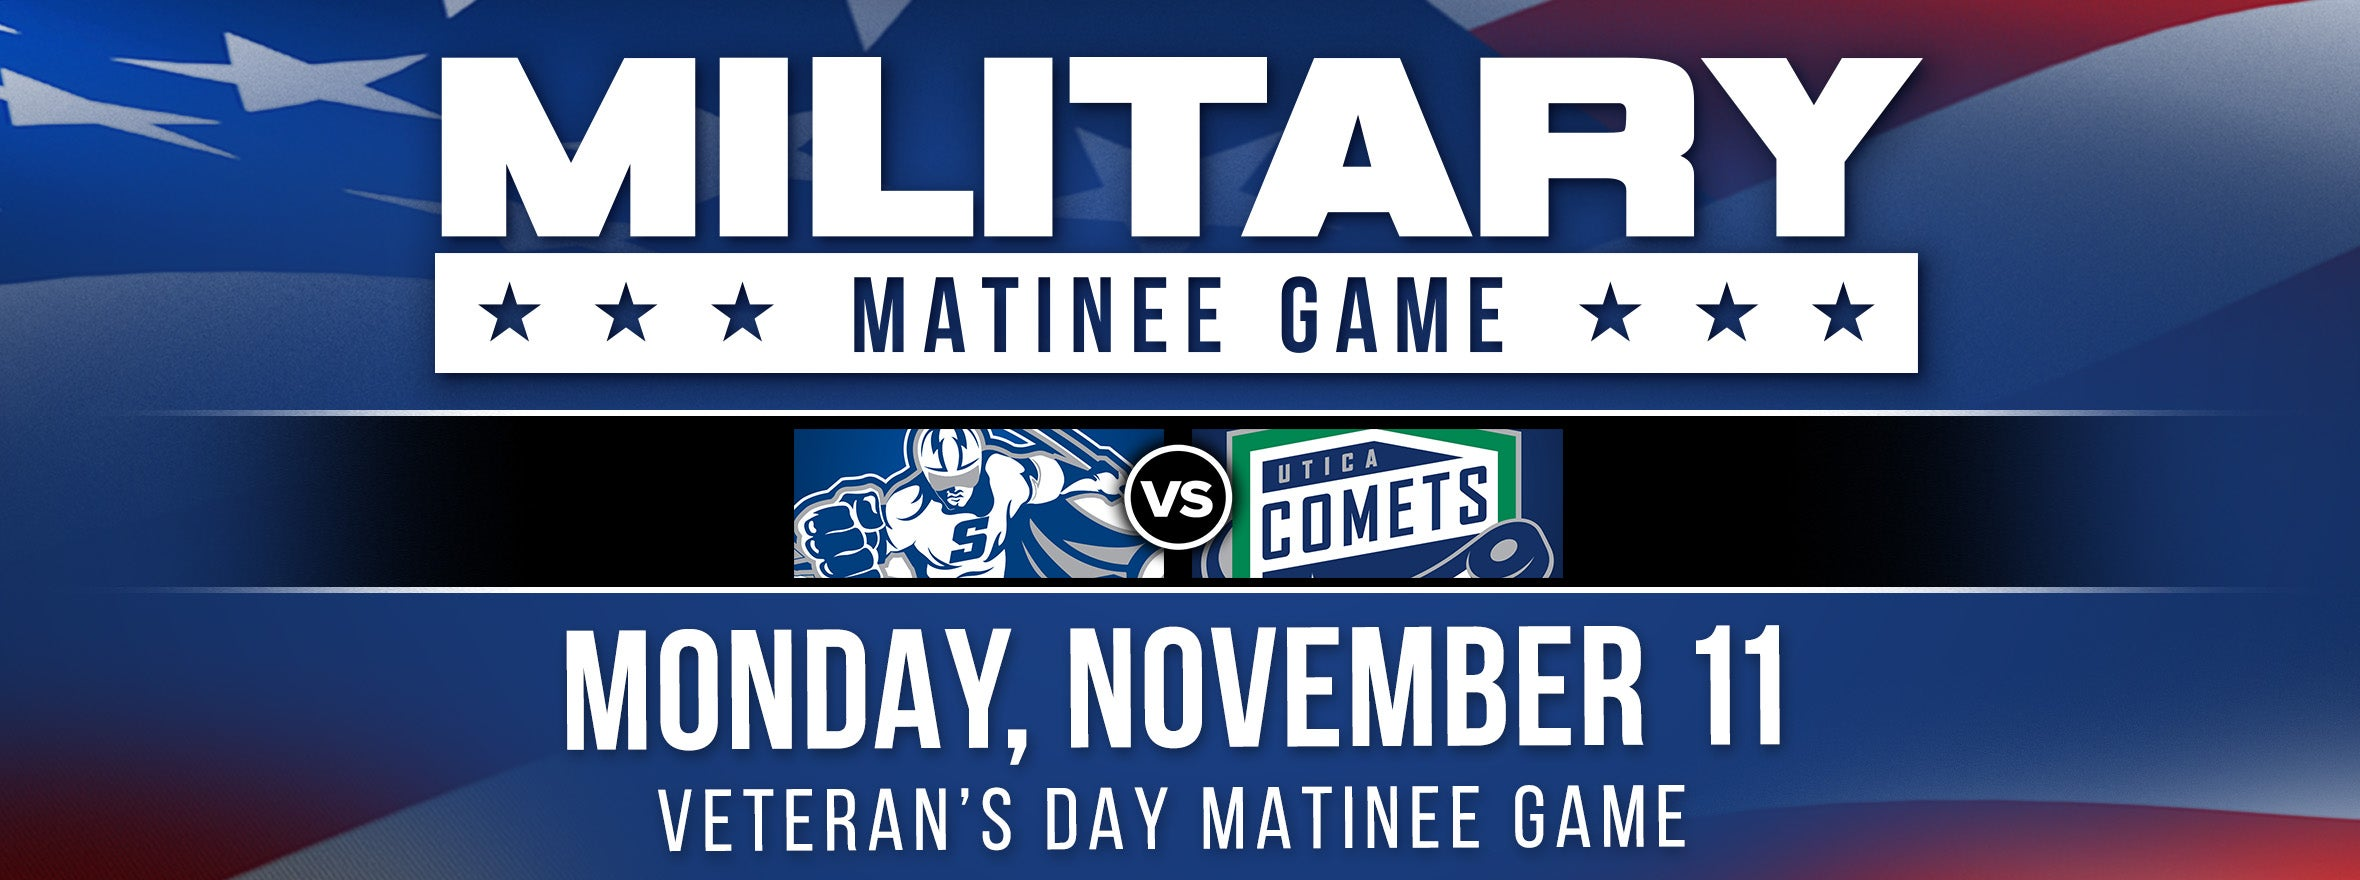 COMETS ANNOUNCE DETAILS OF MILITARY APPRECIATION DAY